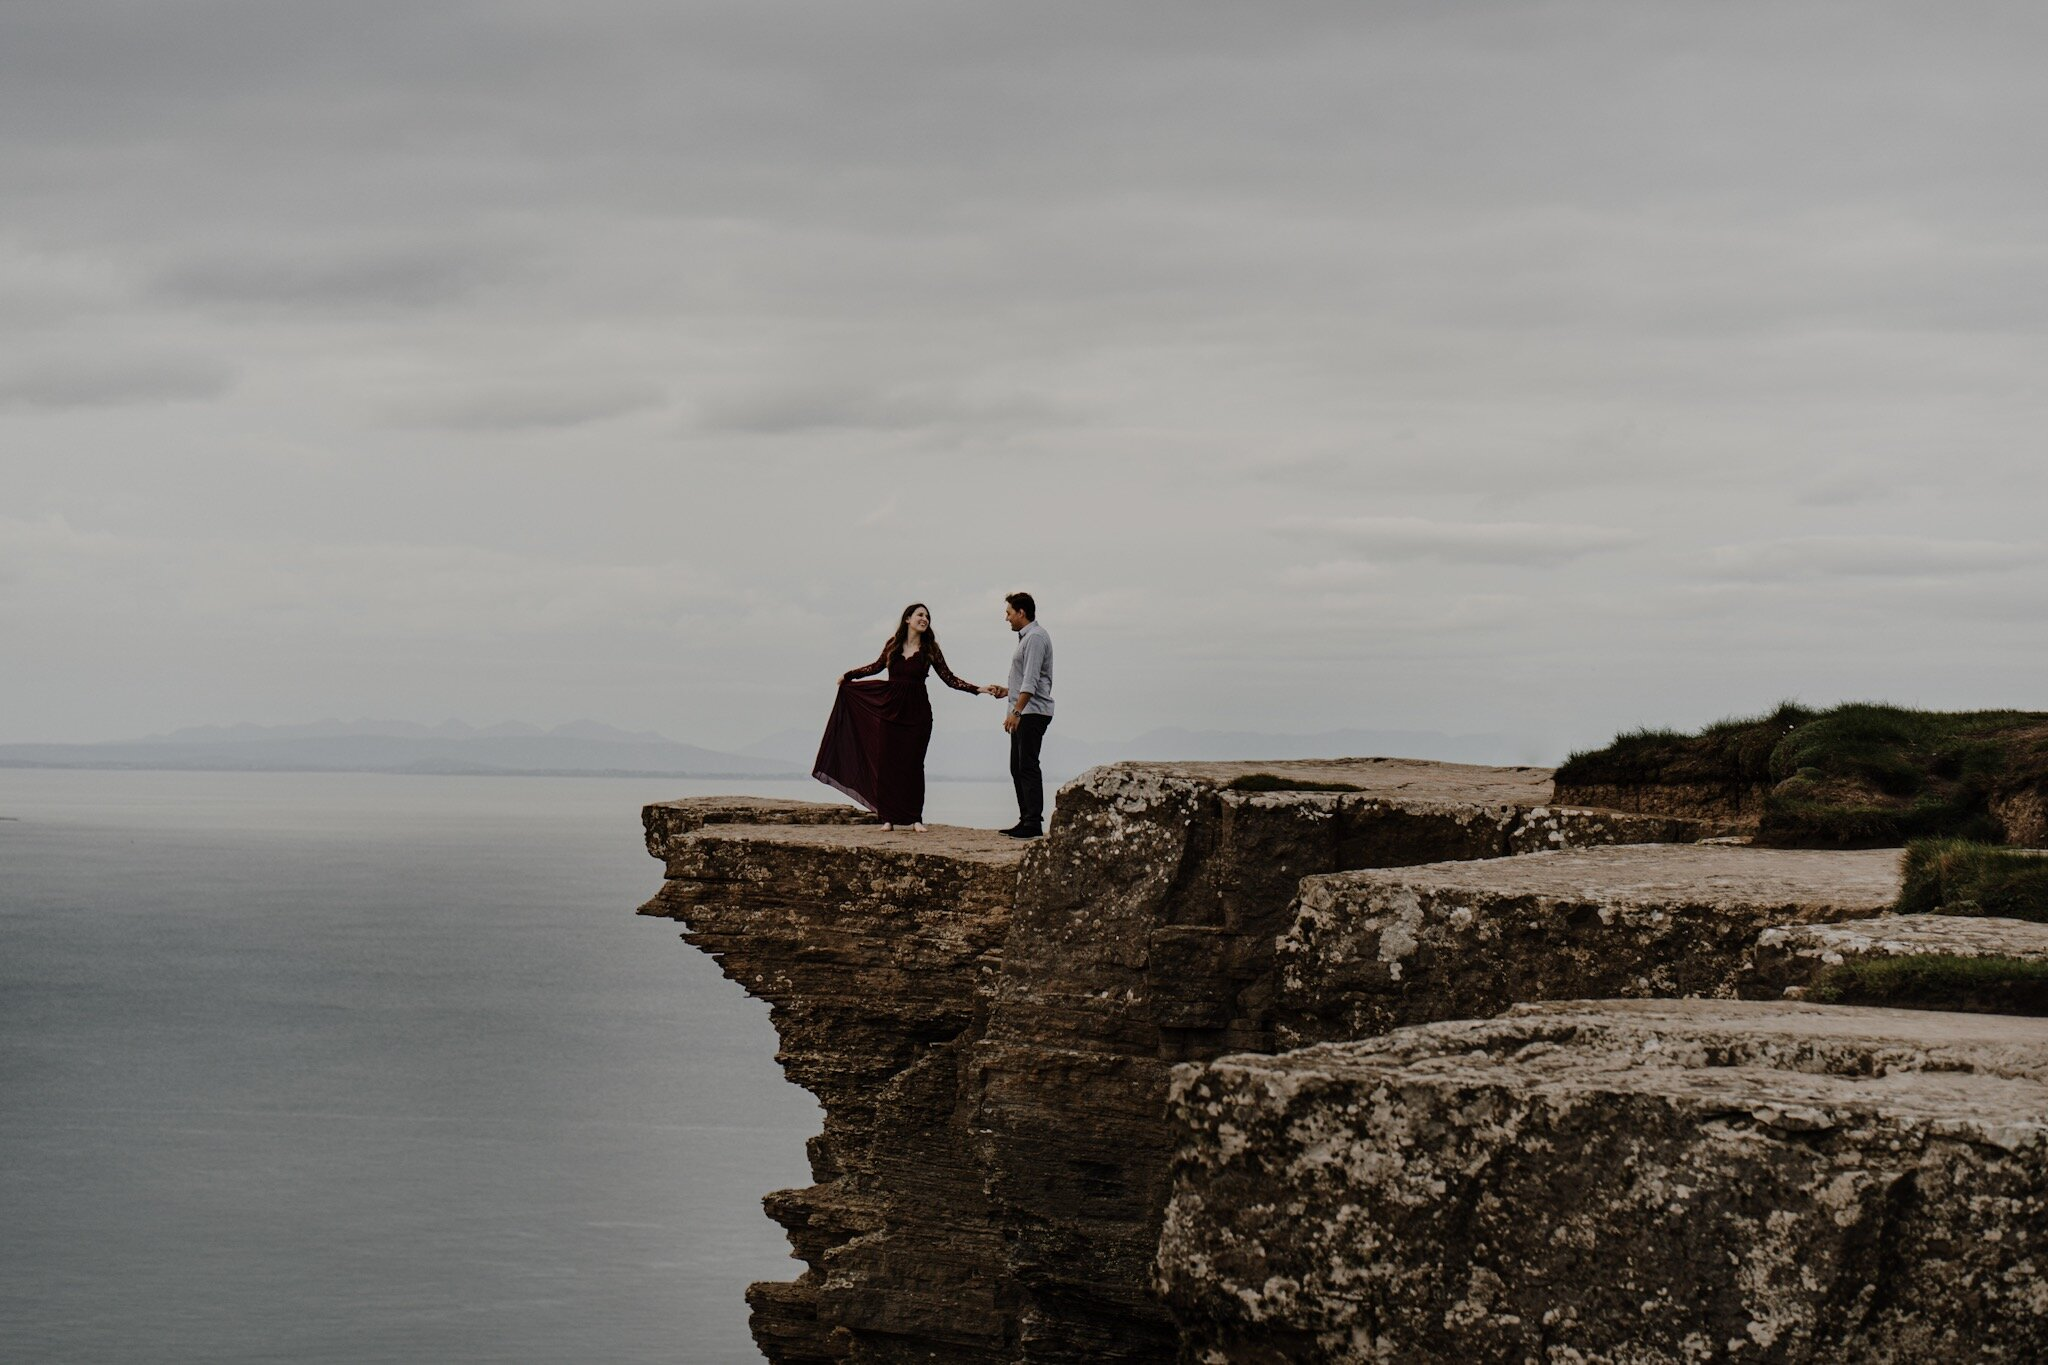 Cliffs-of-Moher-couple-cliff-edge-burgundy-dress-anniversary